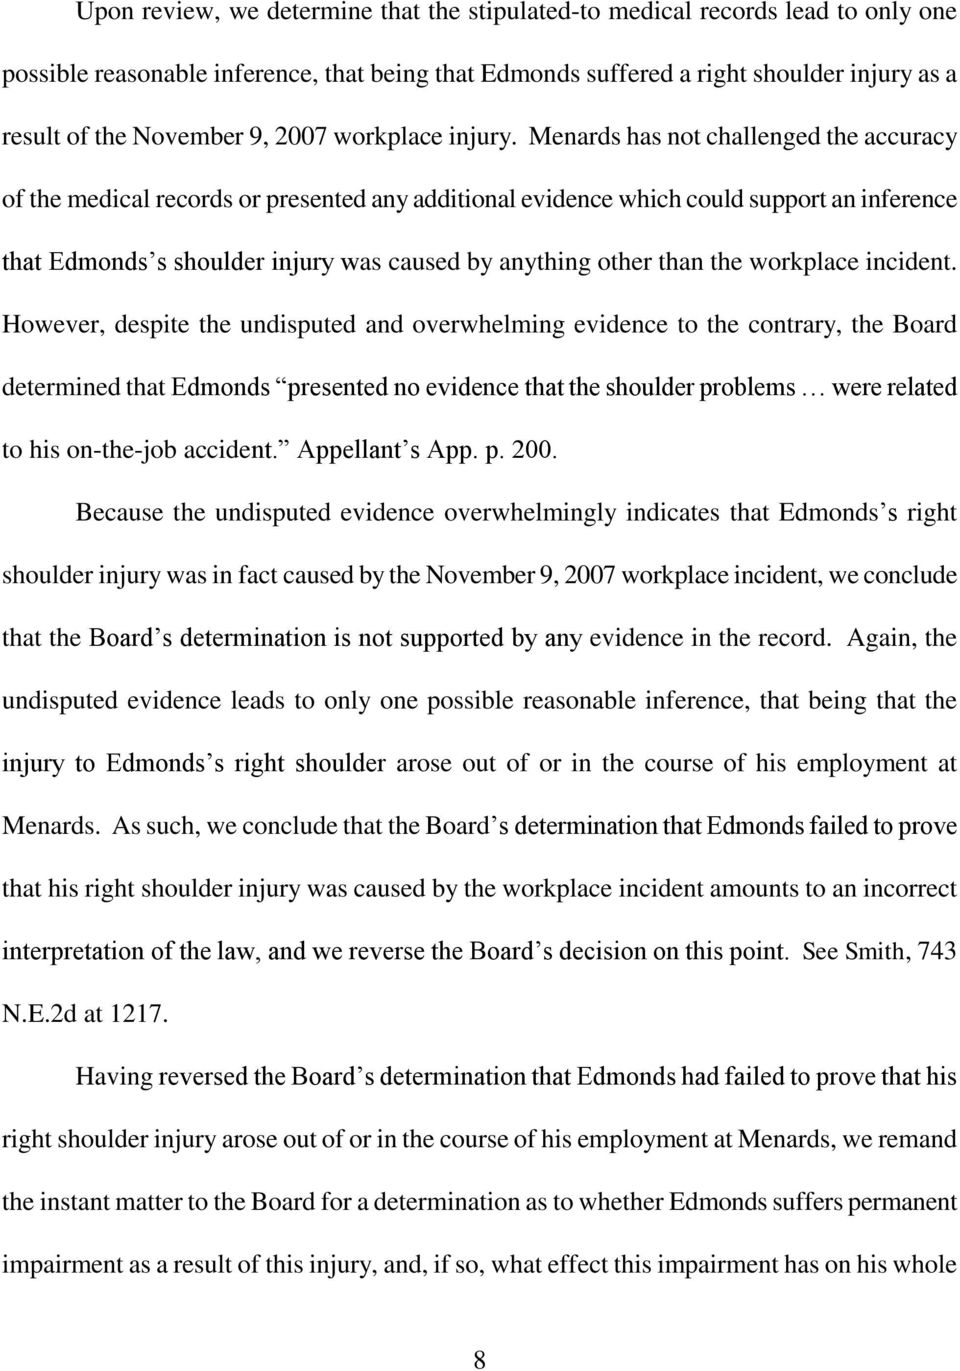 Menards has not challenged the accuracy of the medical records or presented any additional evidence which could support an inference that Edmonds s shoulder injury was caused by anything other than